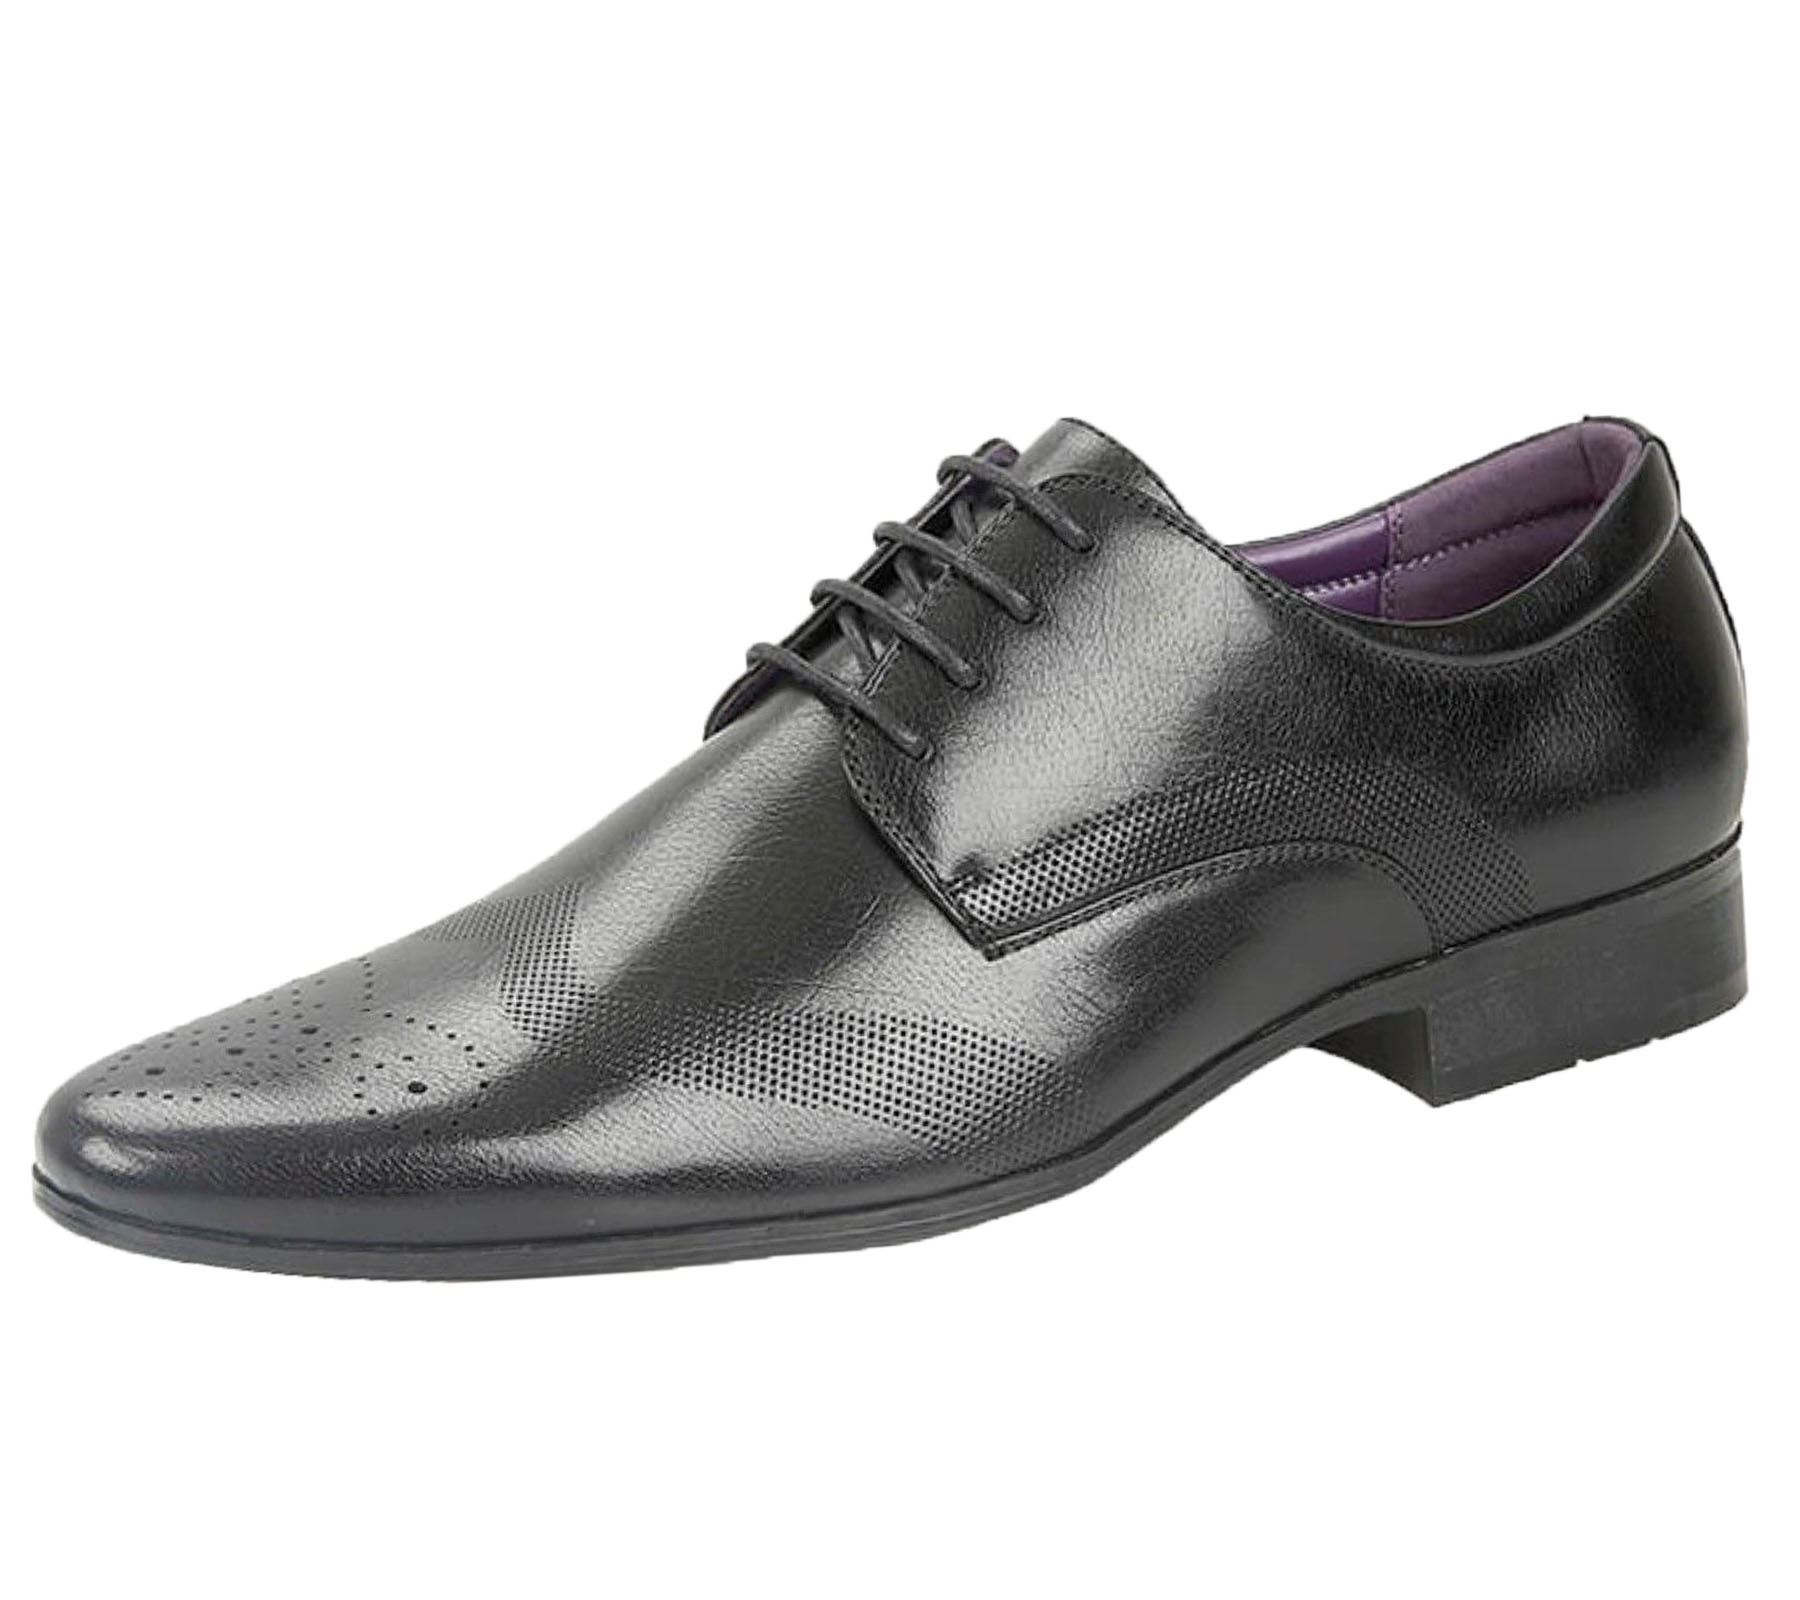 Mens-Brogues-Shoes-Office-Wedding-Formal-Smart-Dress-Shoes-New-Size miniatura 4